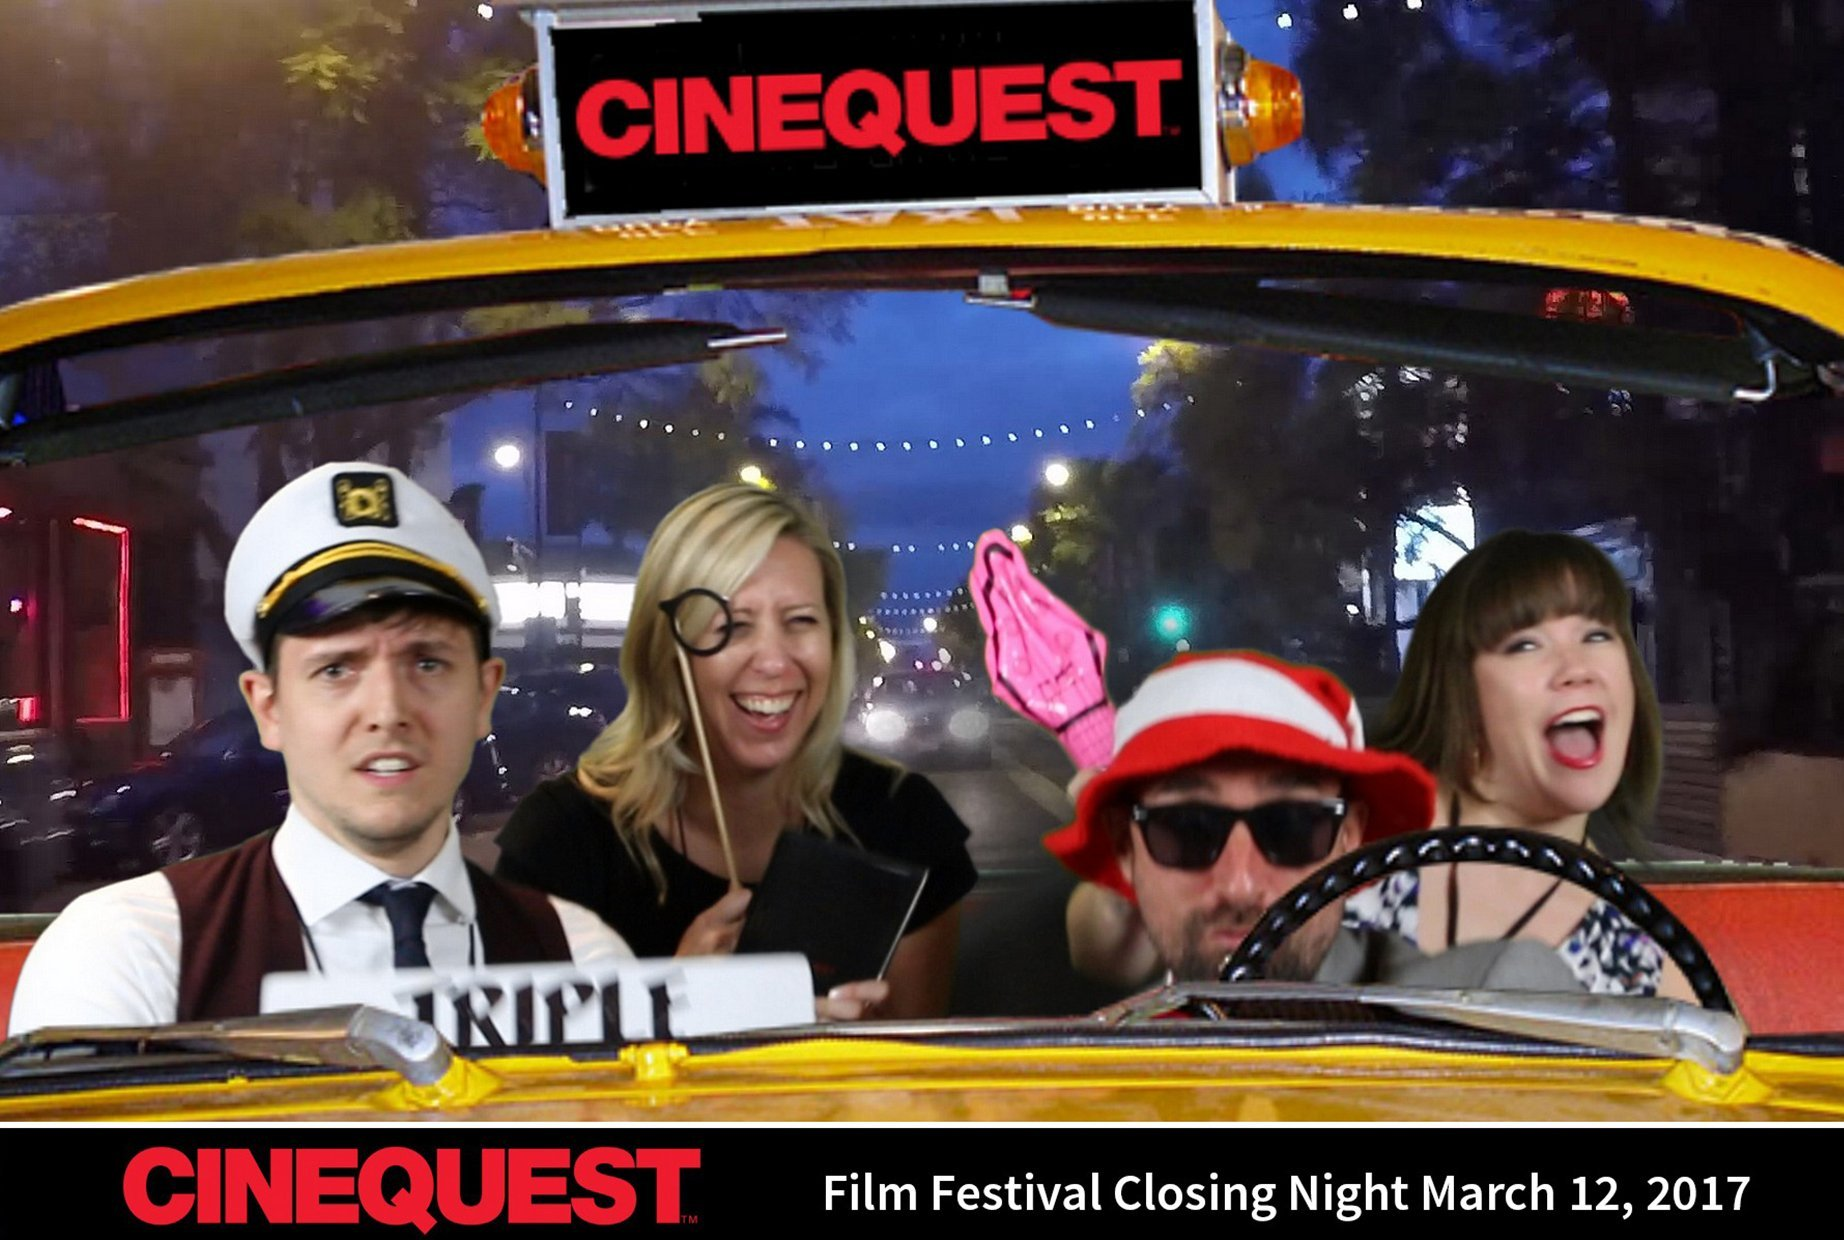 Greenscreen photos from the Cinequest Film Festival in San Jose, CA